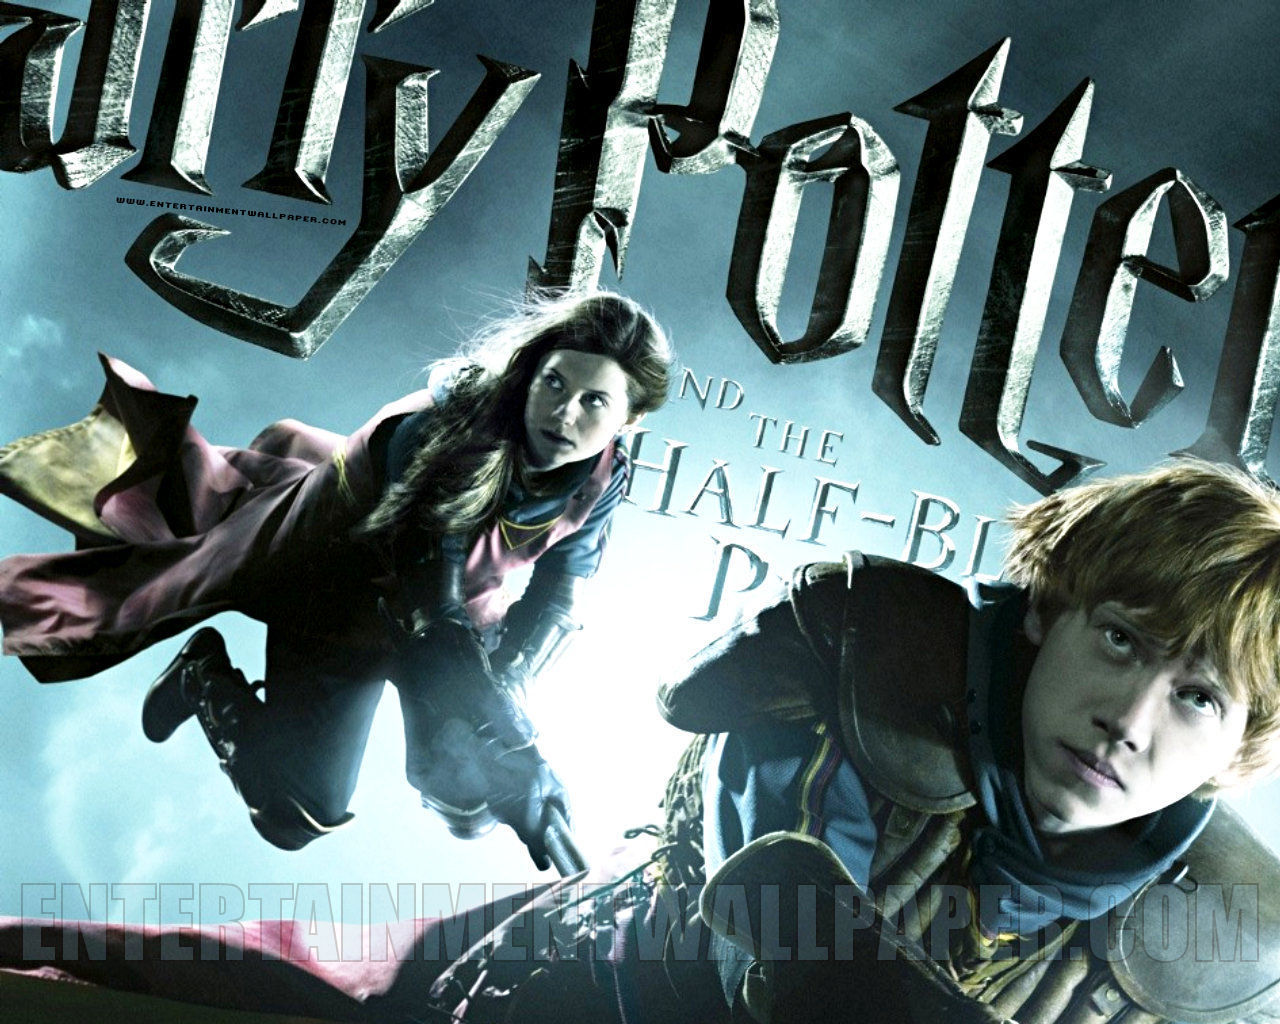 harry potter images harry potter and the half-blood prince hd